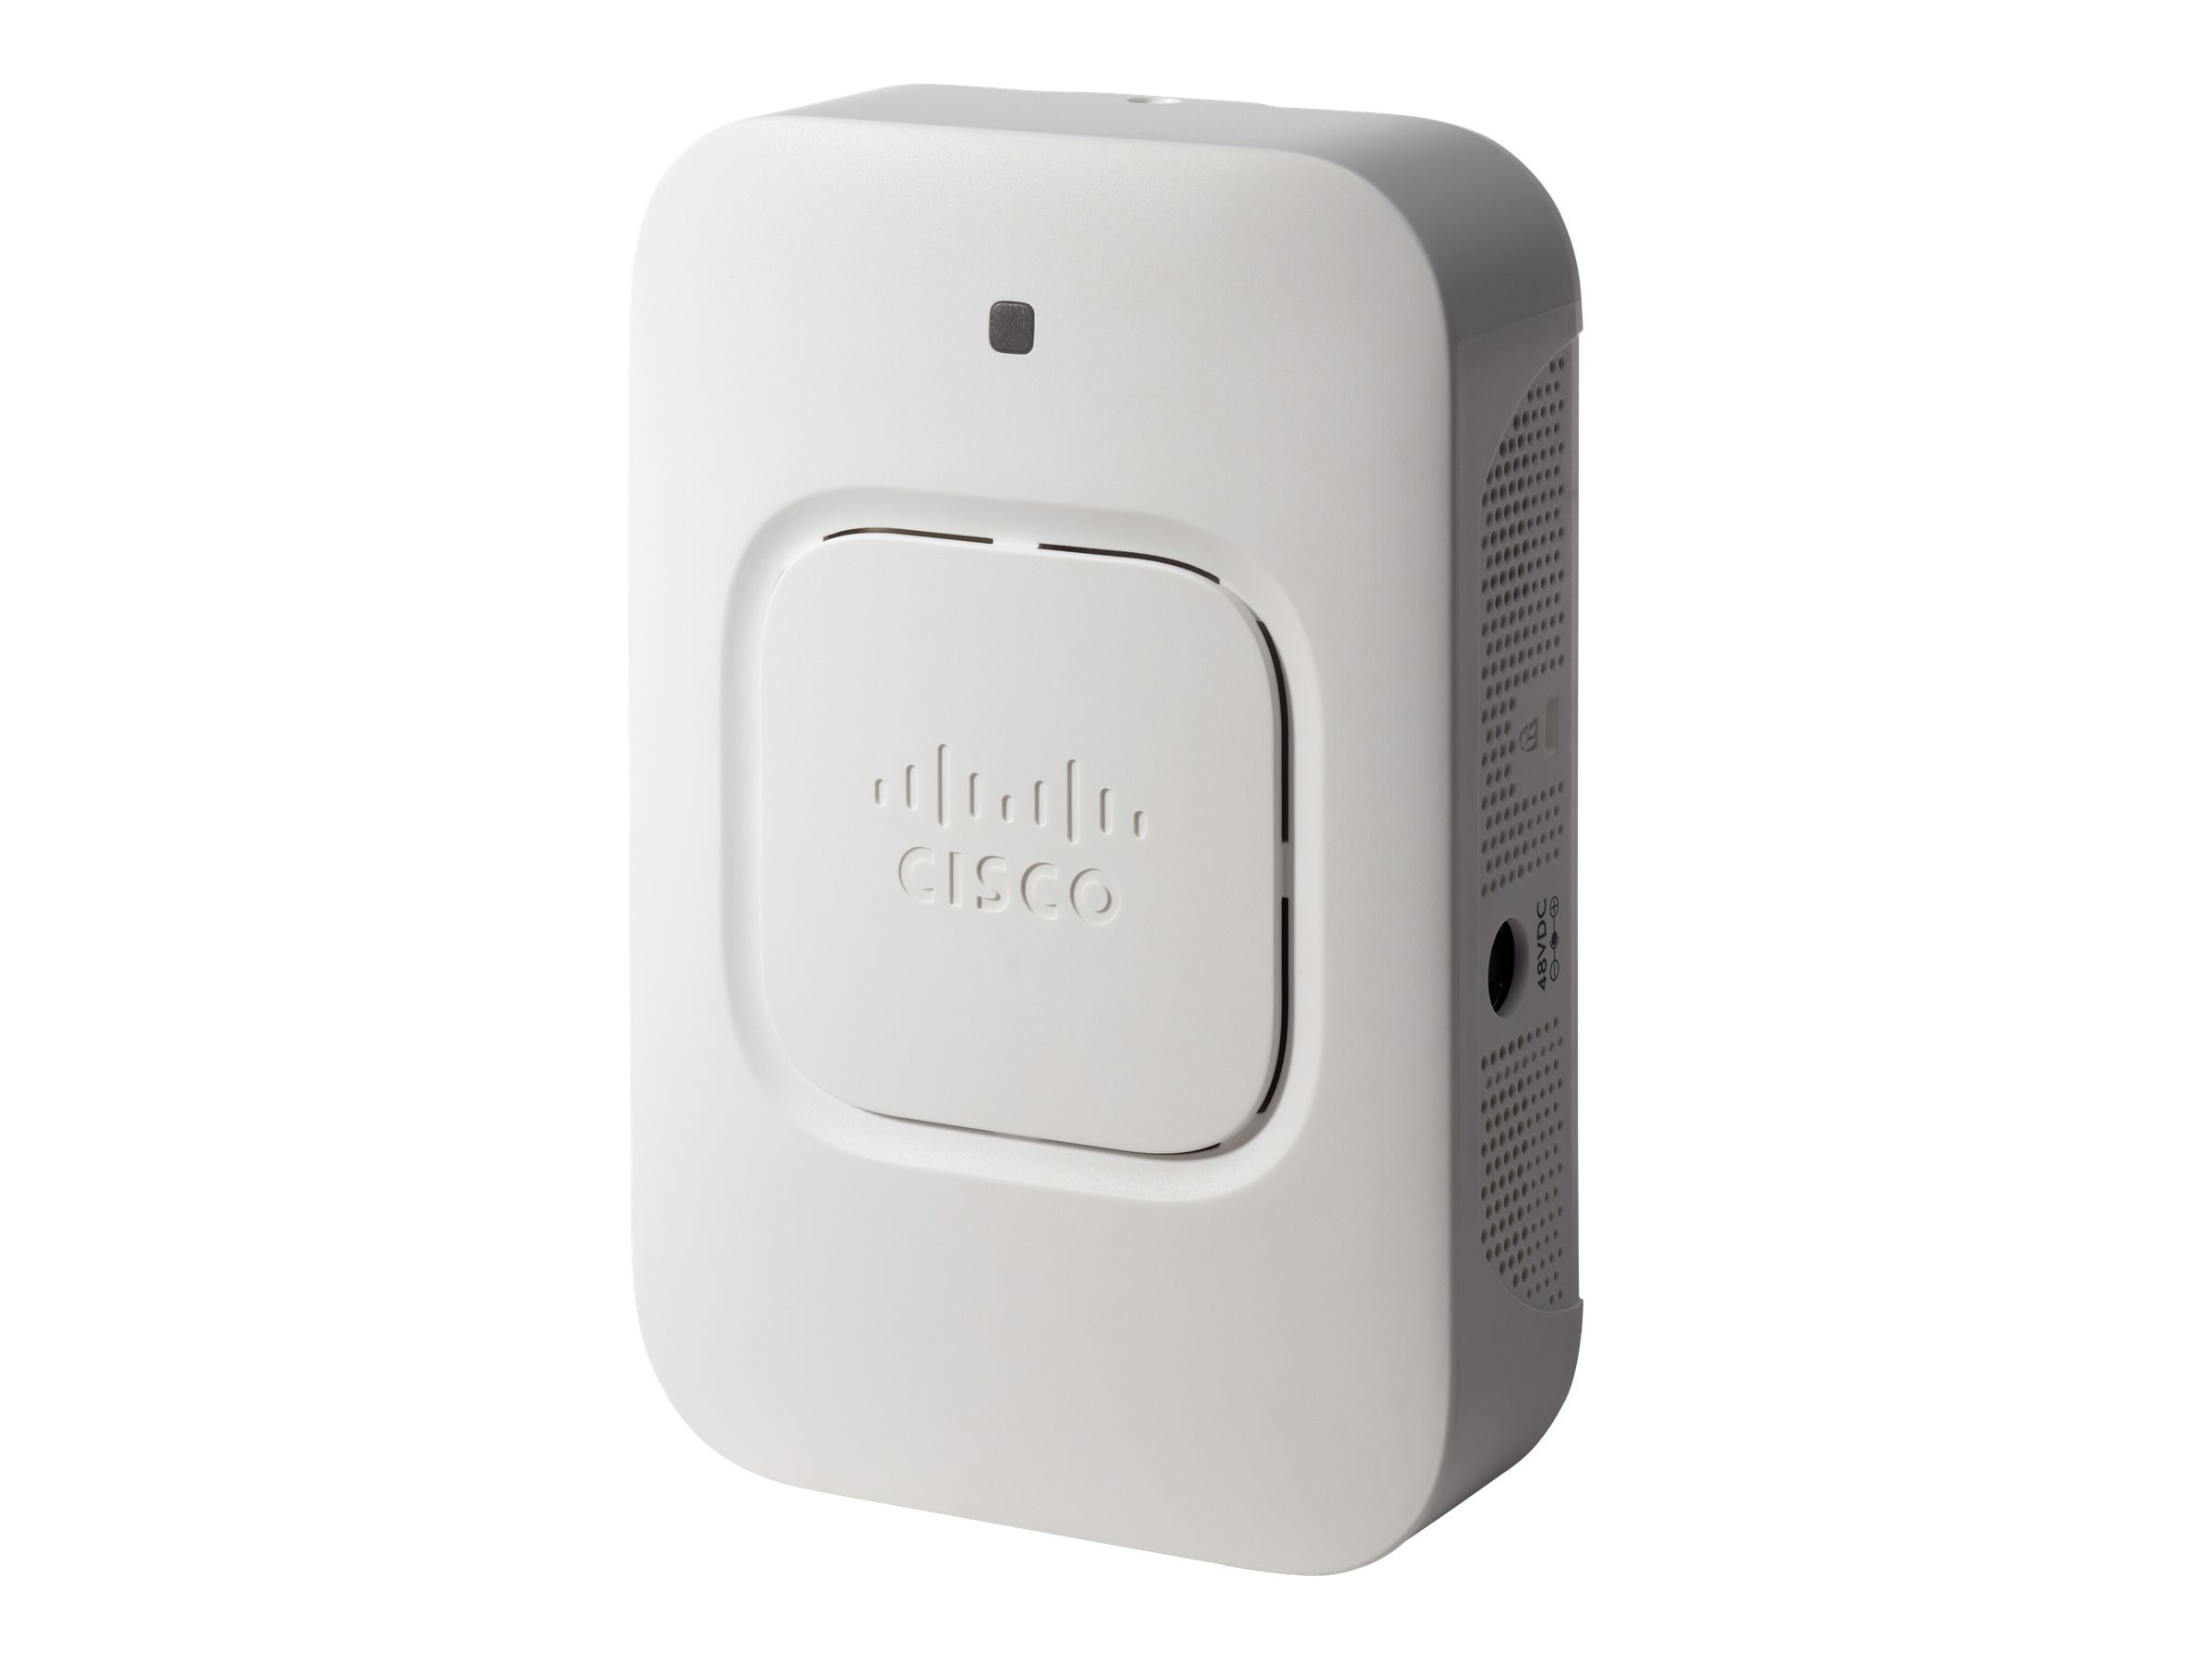 Cisco WAP361 Dual Radio Wall AP w 2x2:2SS, A Domain